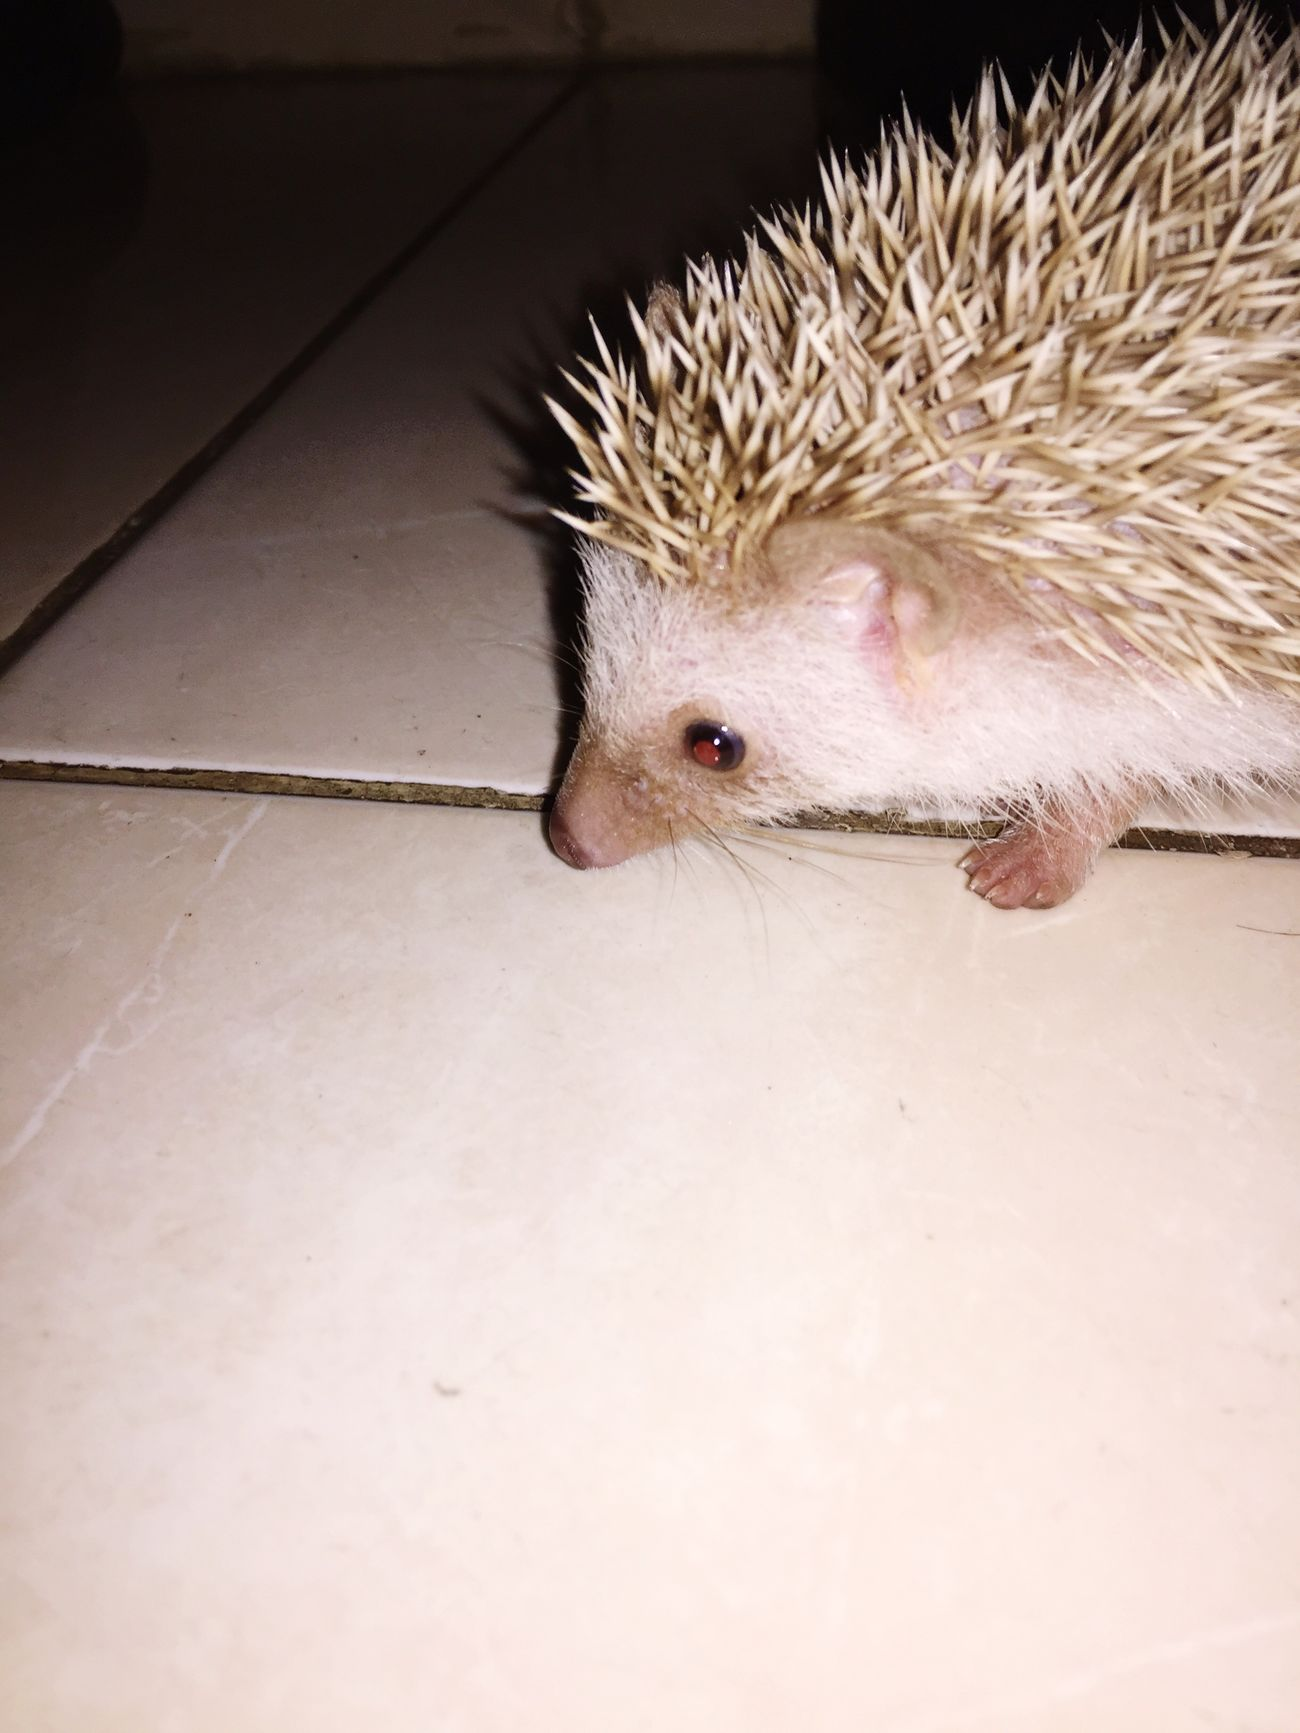 My nduutt😝 Hedgehog